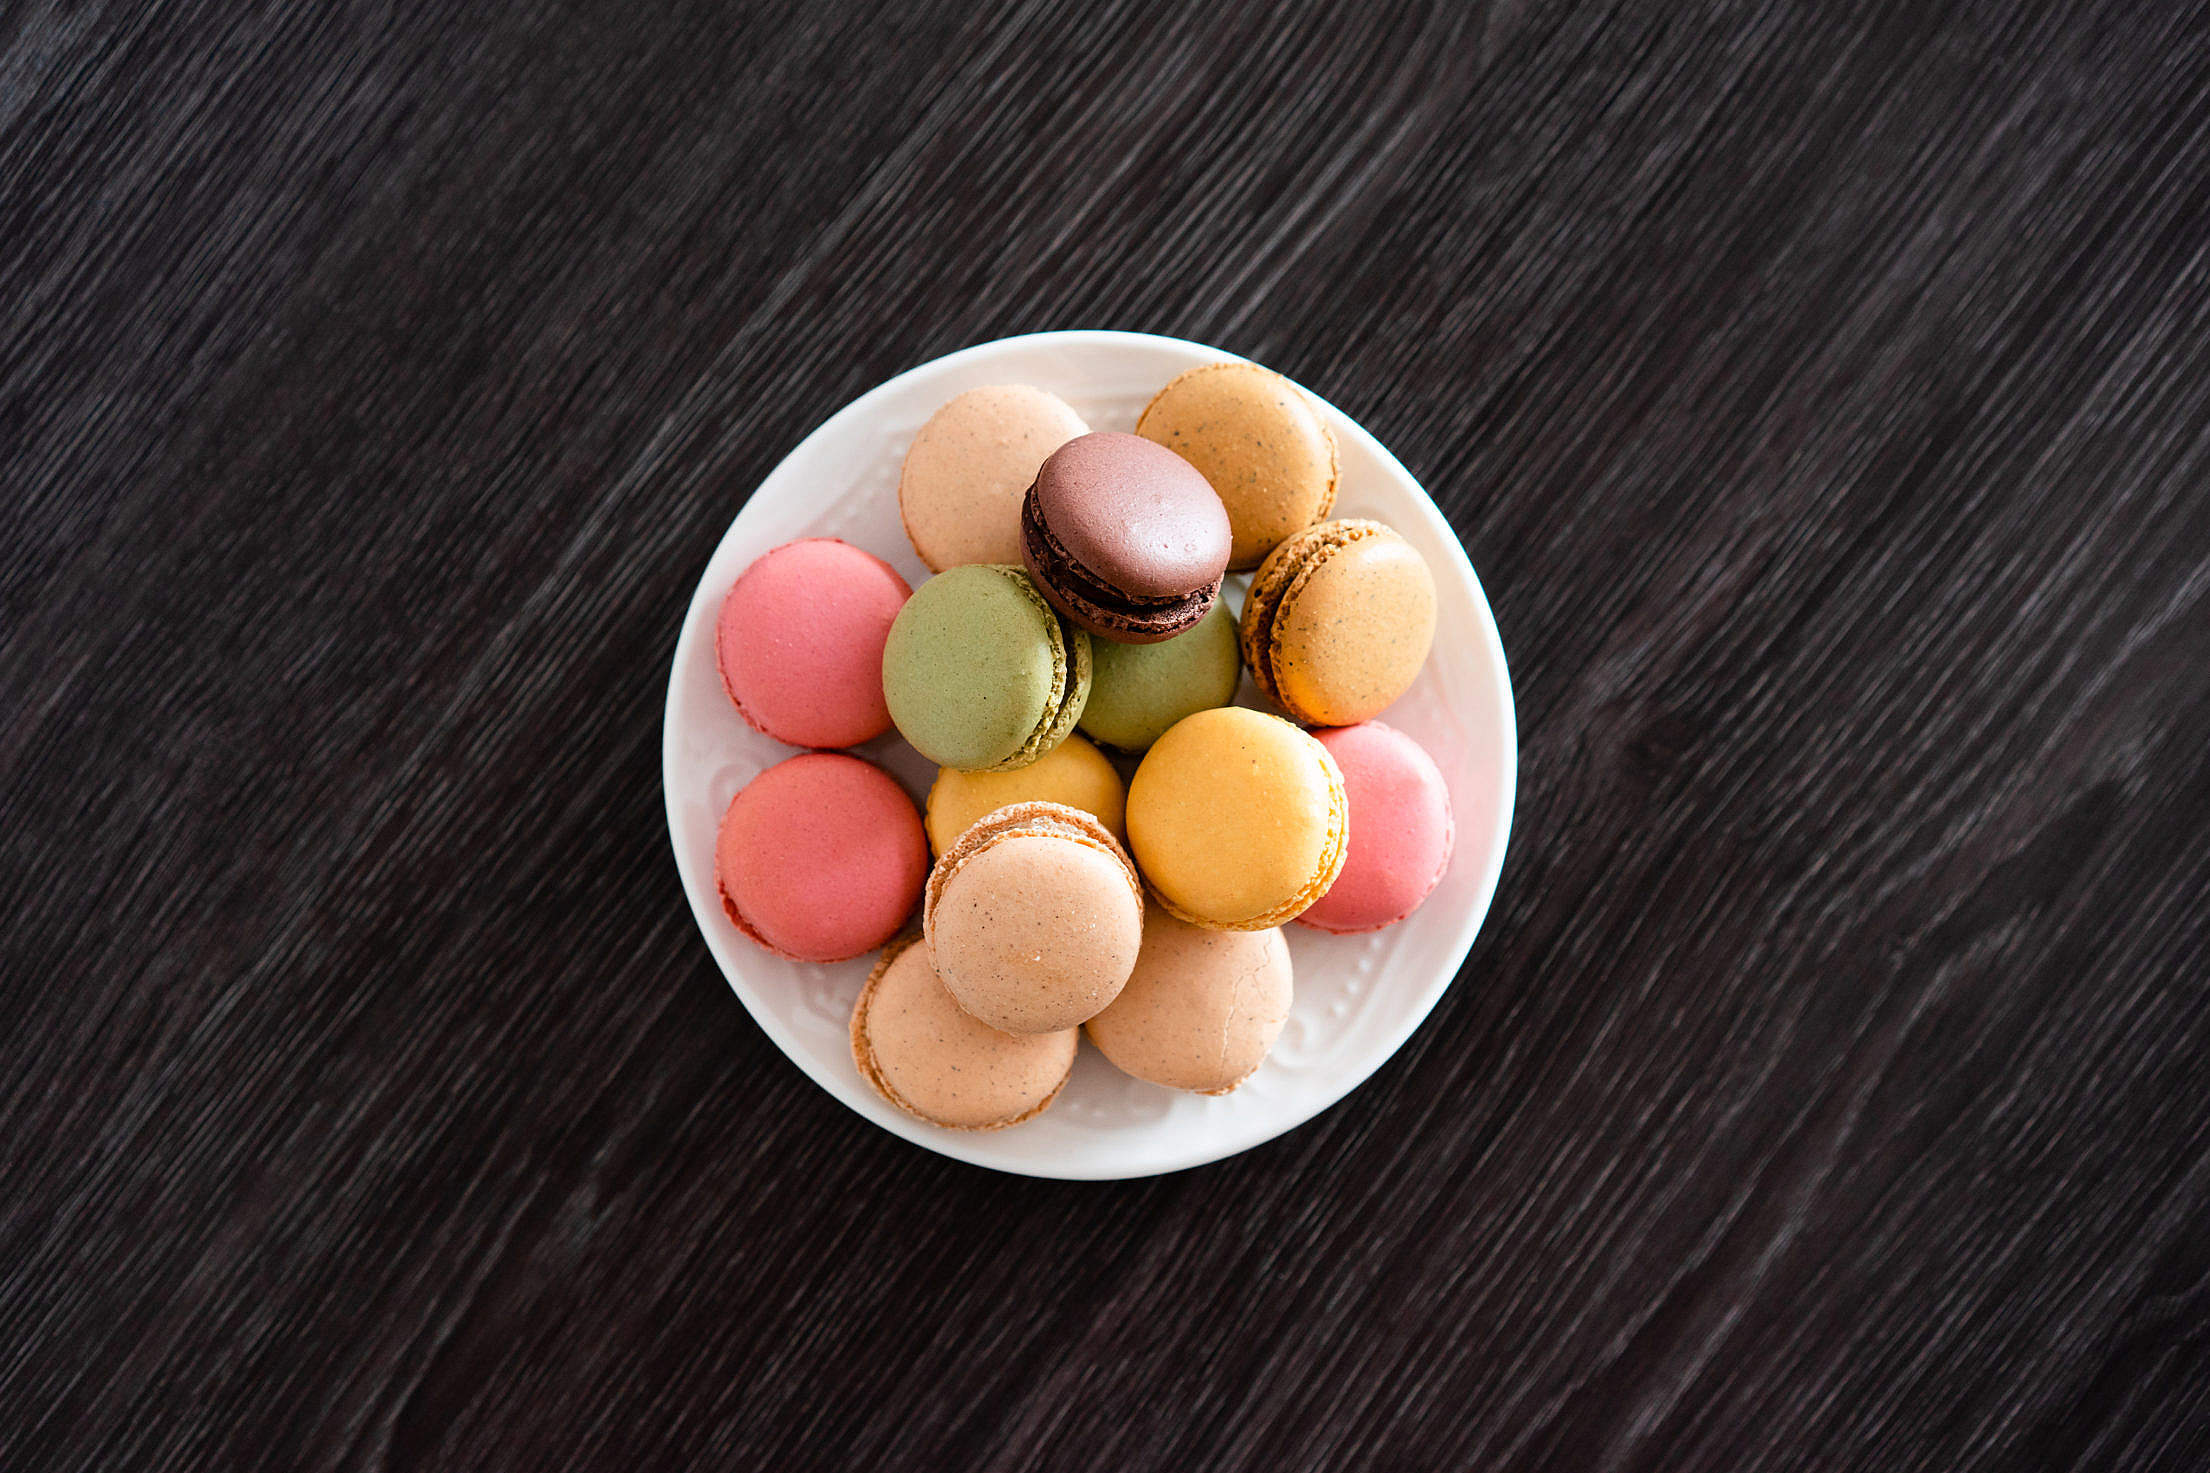 Delicate Homemade Macarons on The Black Wood Free Stock Photo